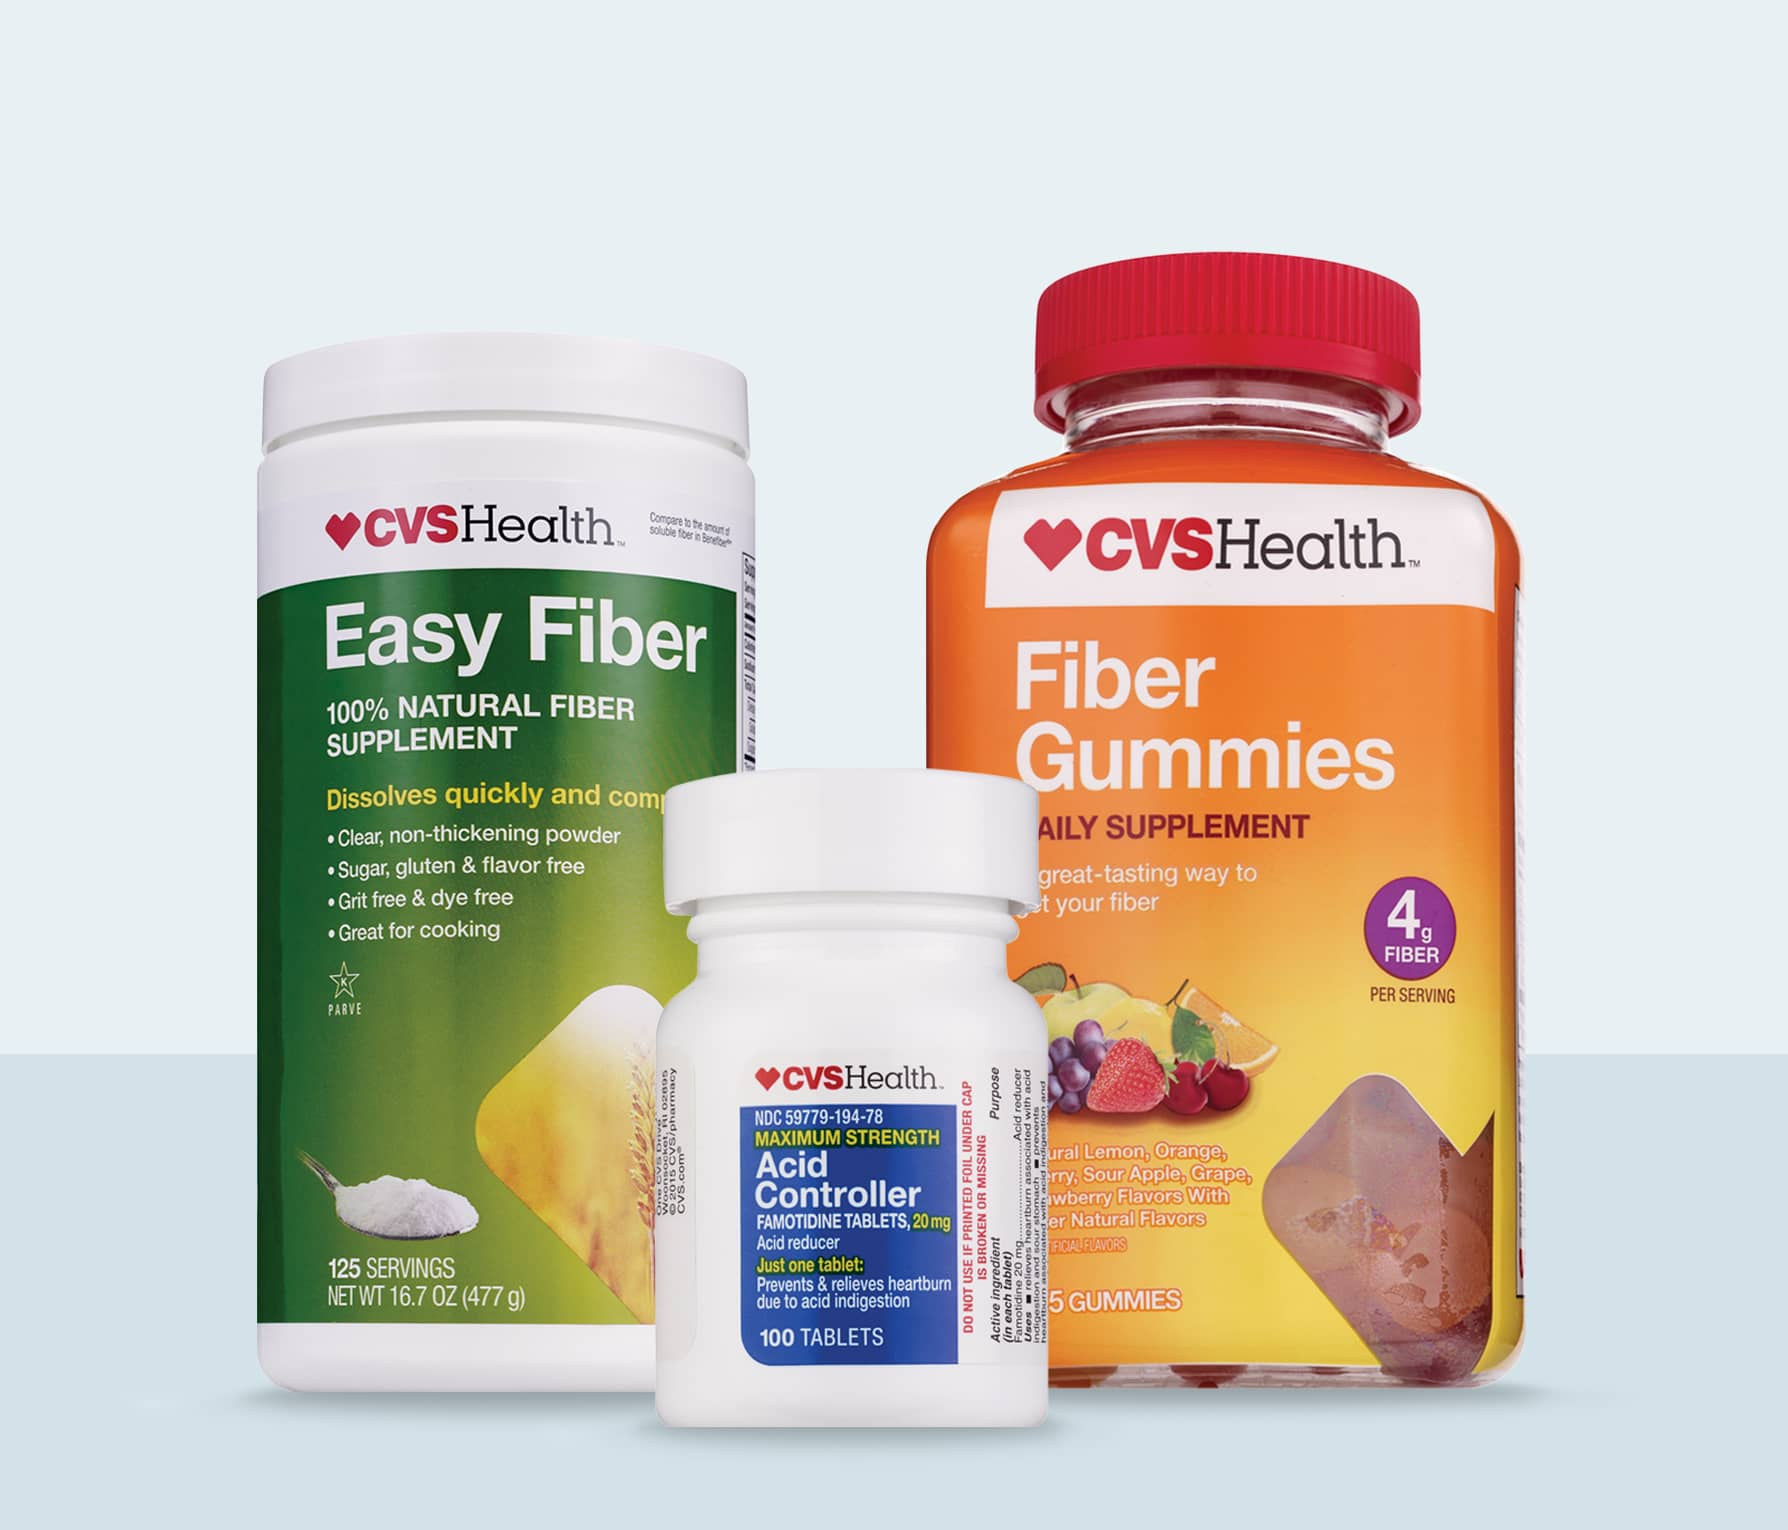 image of CVS brand digestive health products